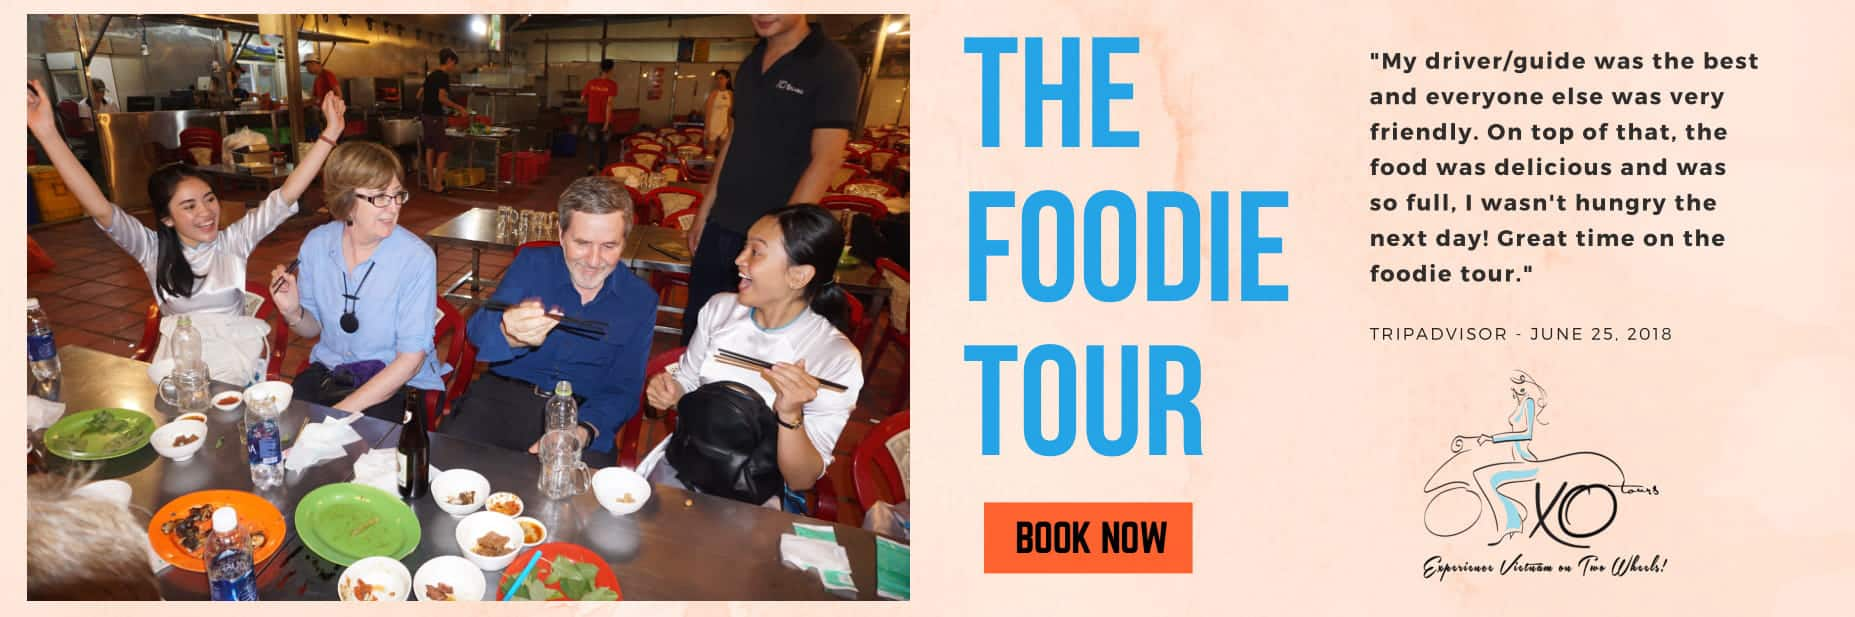 XO Street Food Tour Banner